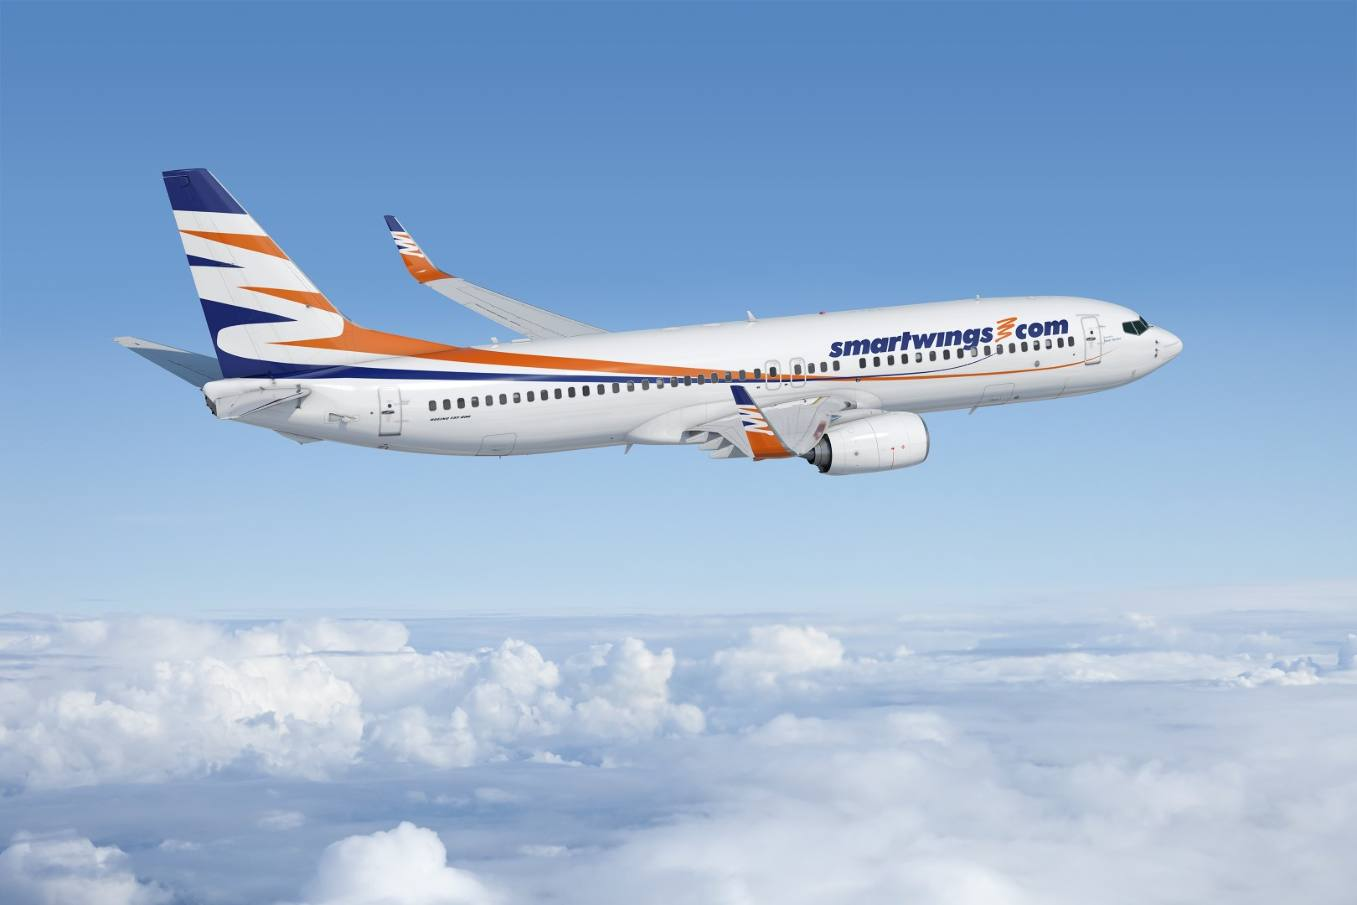 Smartwings entrusts the analysis of costs on MRO services to Airinmar